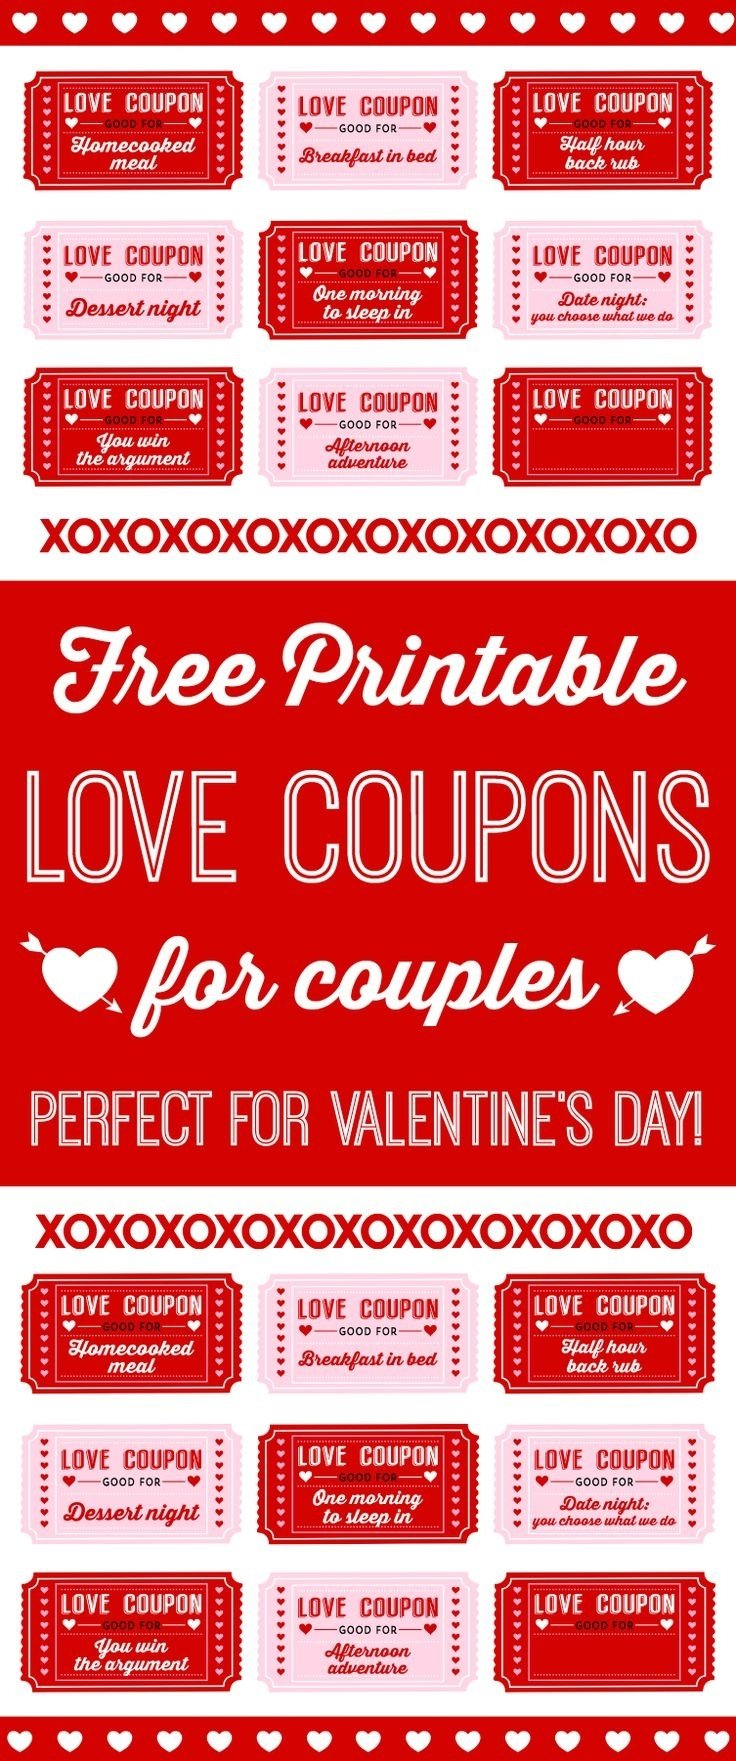 10 Unique Romantic Coupon Ideas For Him 33 best gifts images on pinterest gift ideas presents and valentines 2020